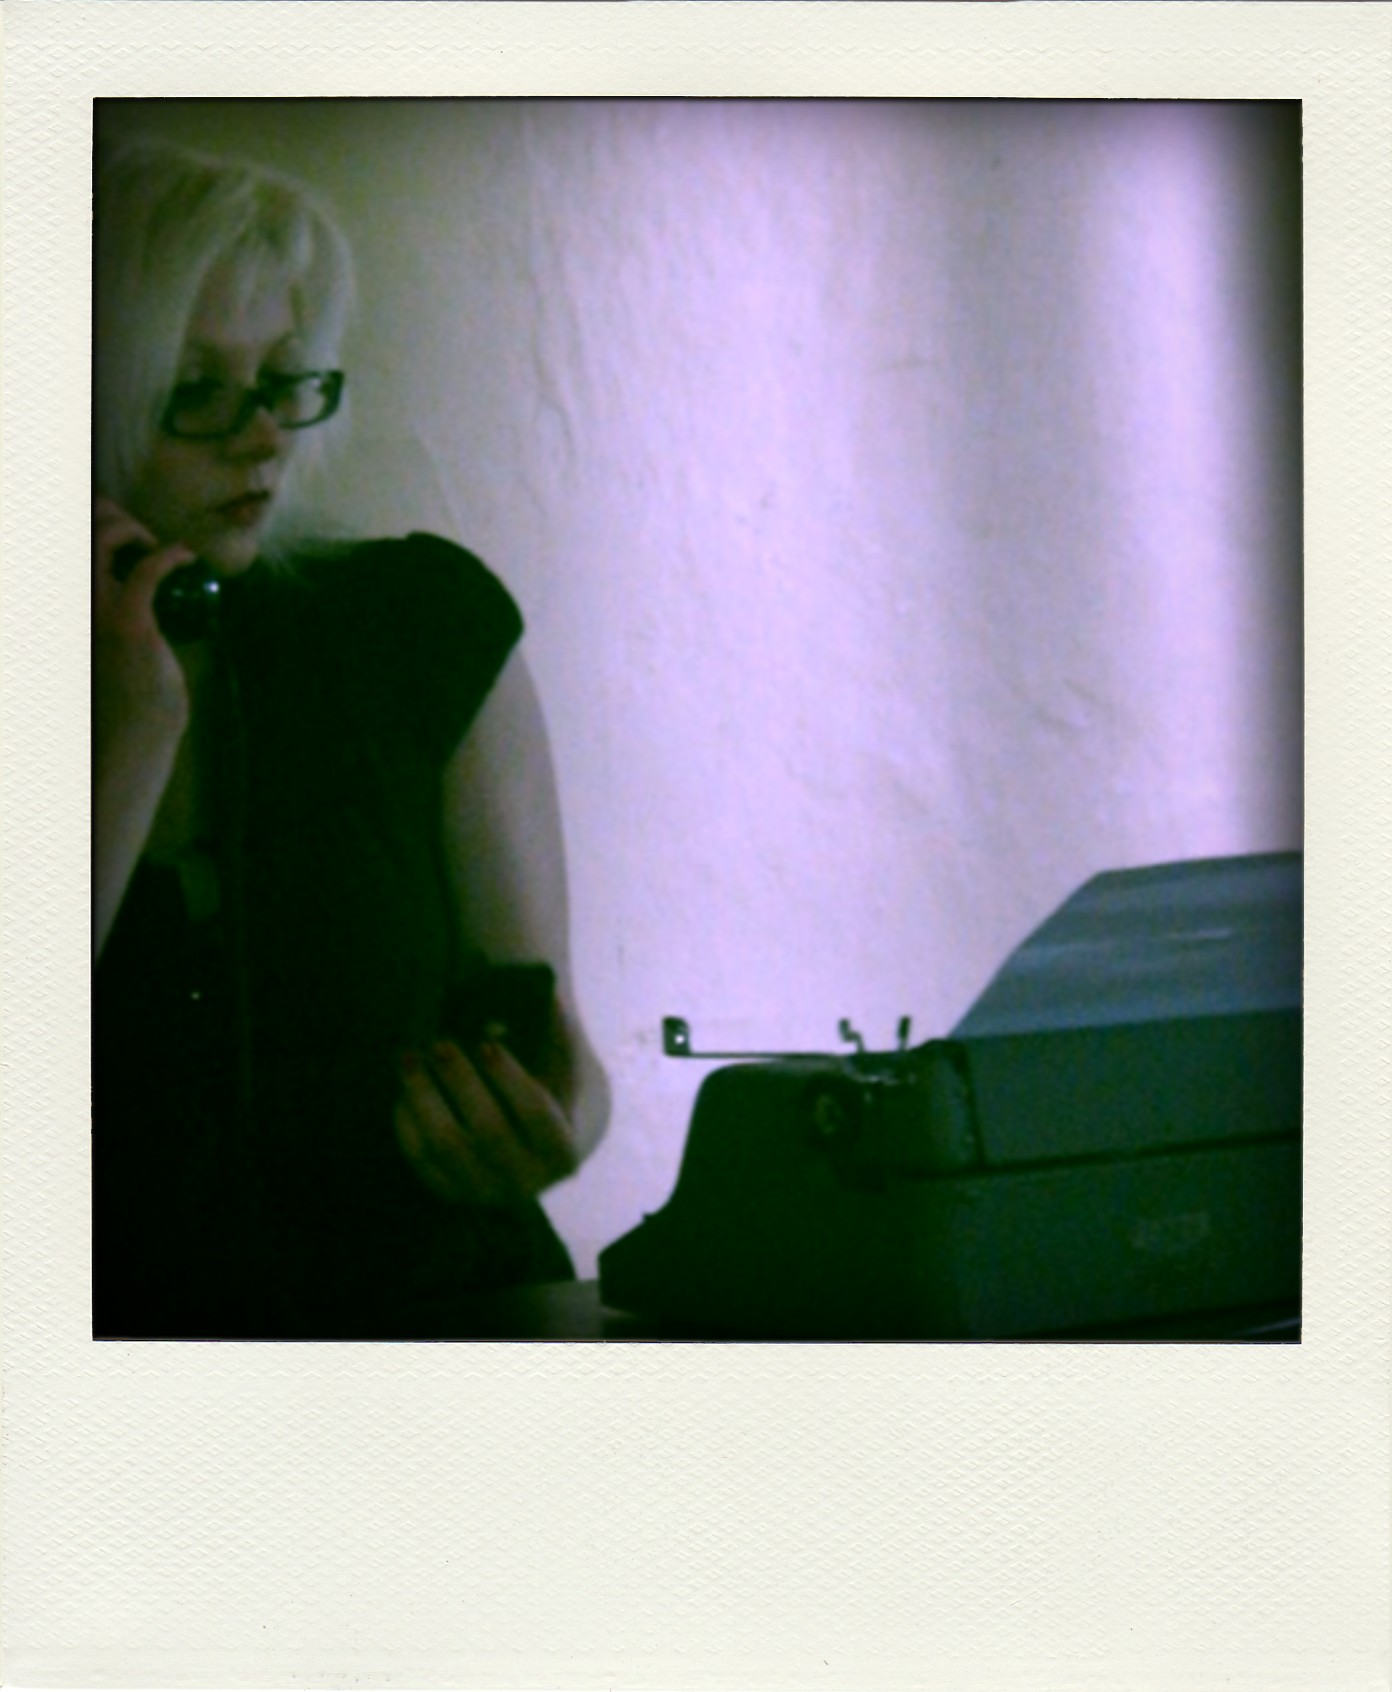 about_polaroid